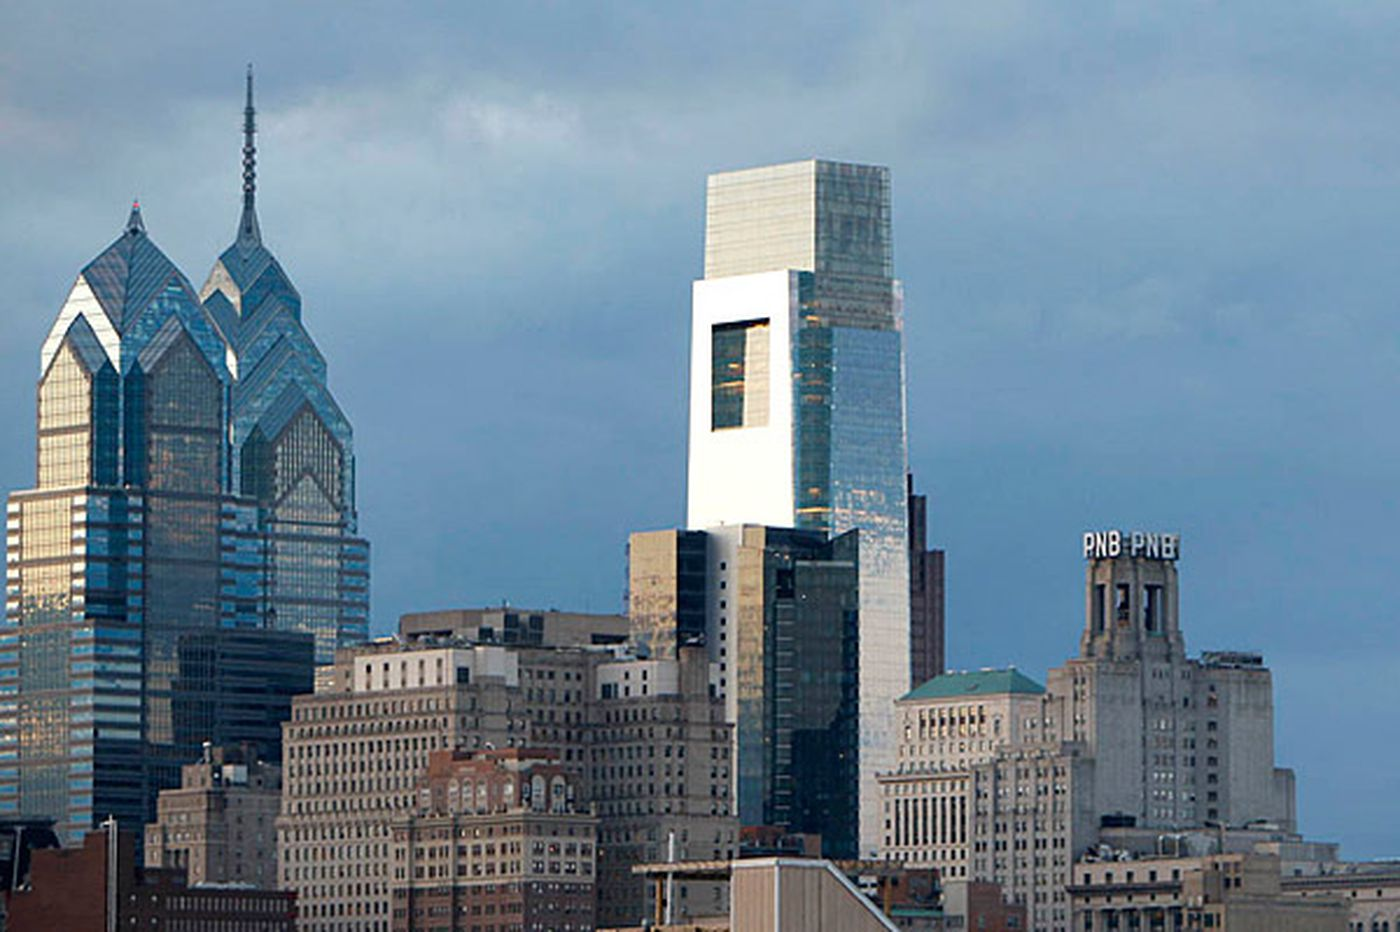 Census: Philadelphia population grows again, but rate slows